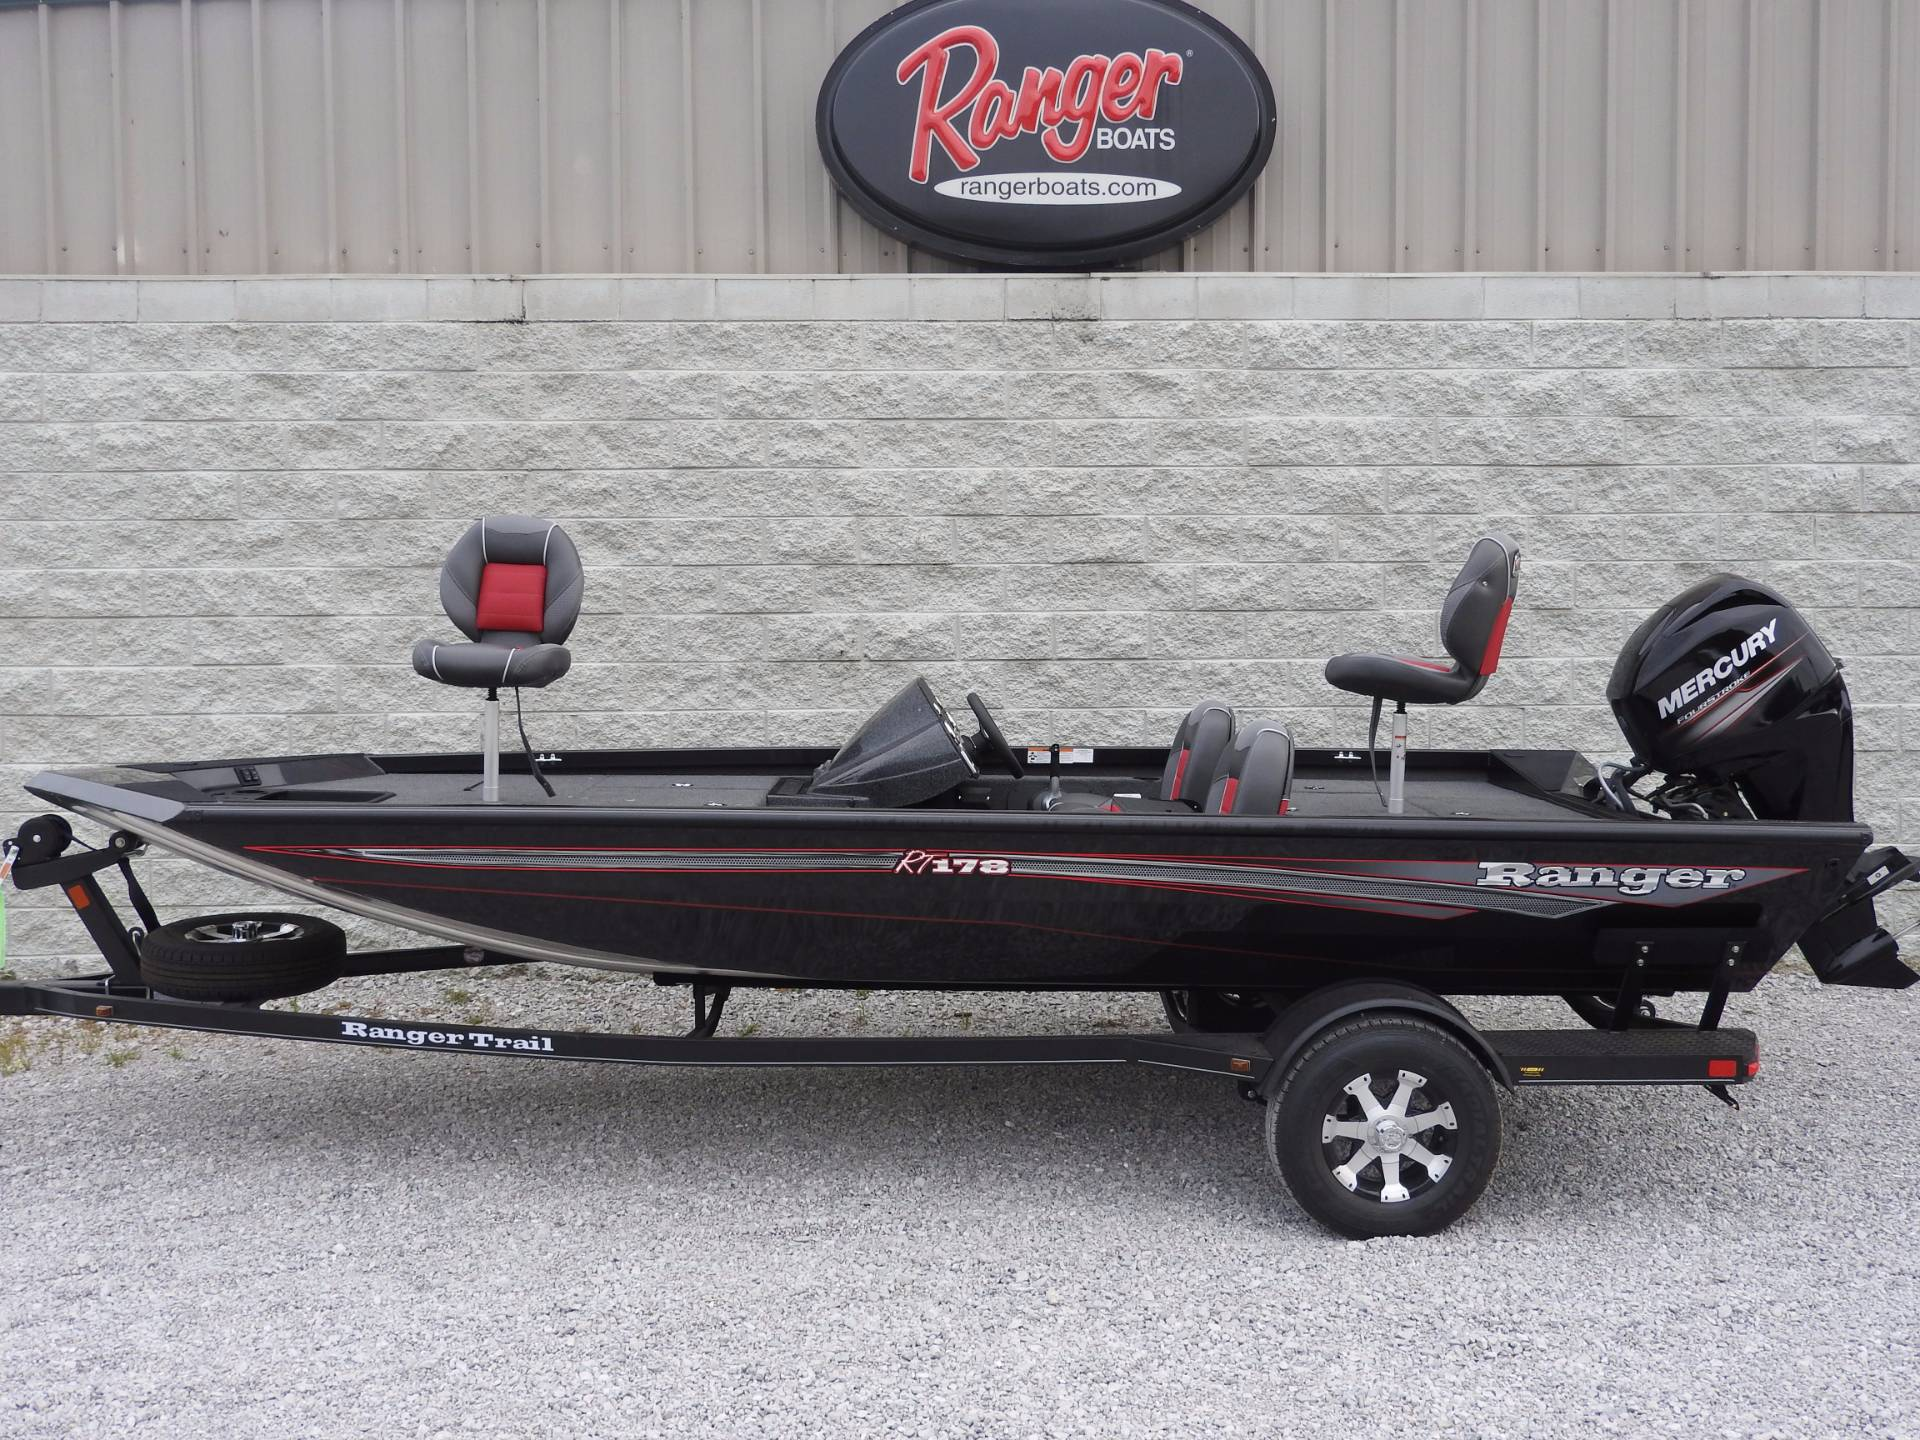 Ranger Rt178 Boats For Sale In United States Boats Com